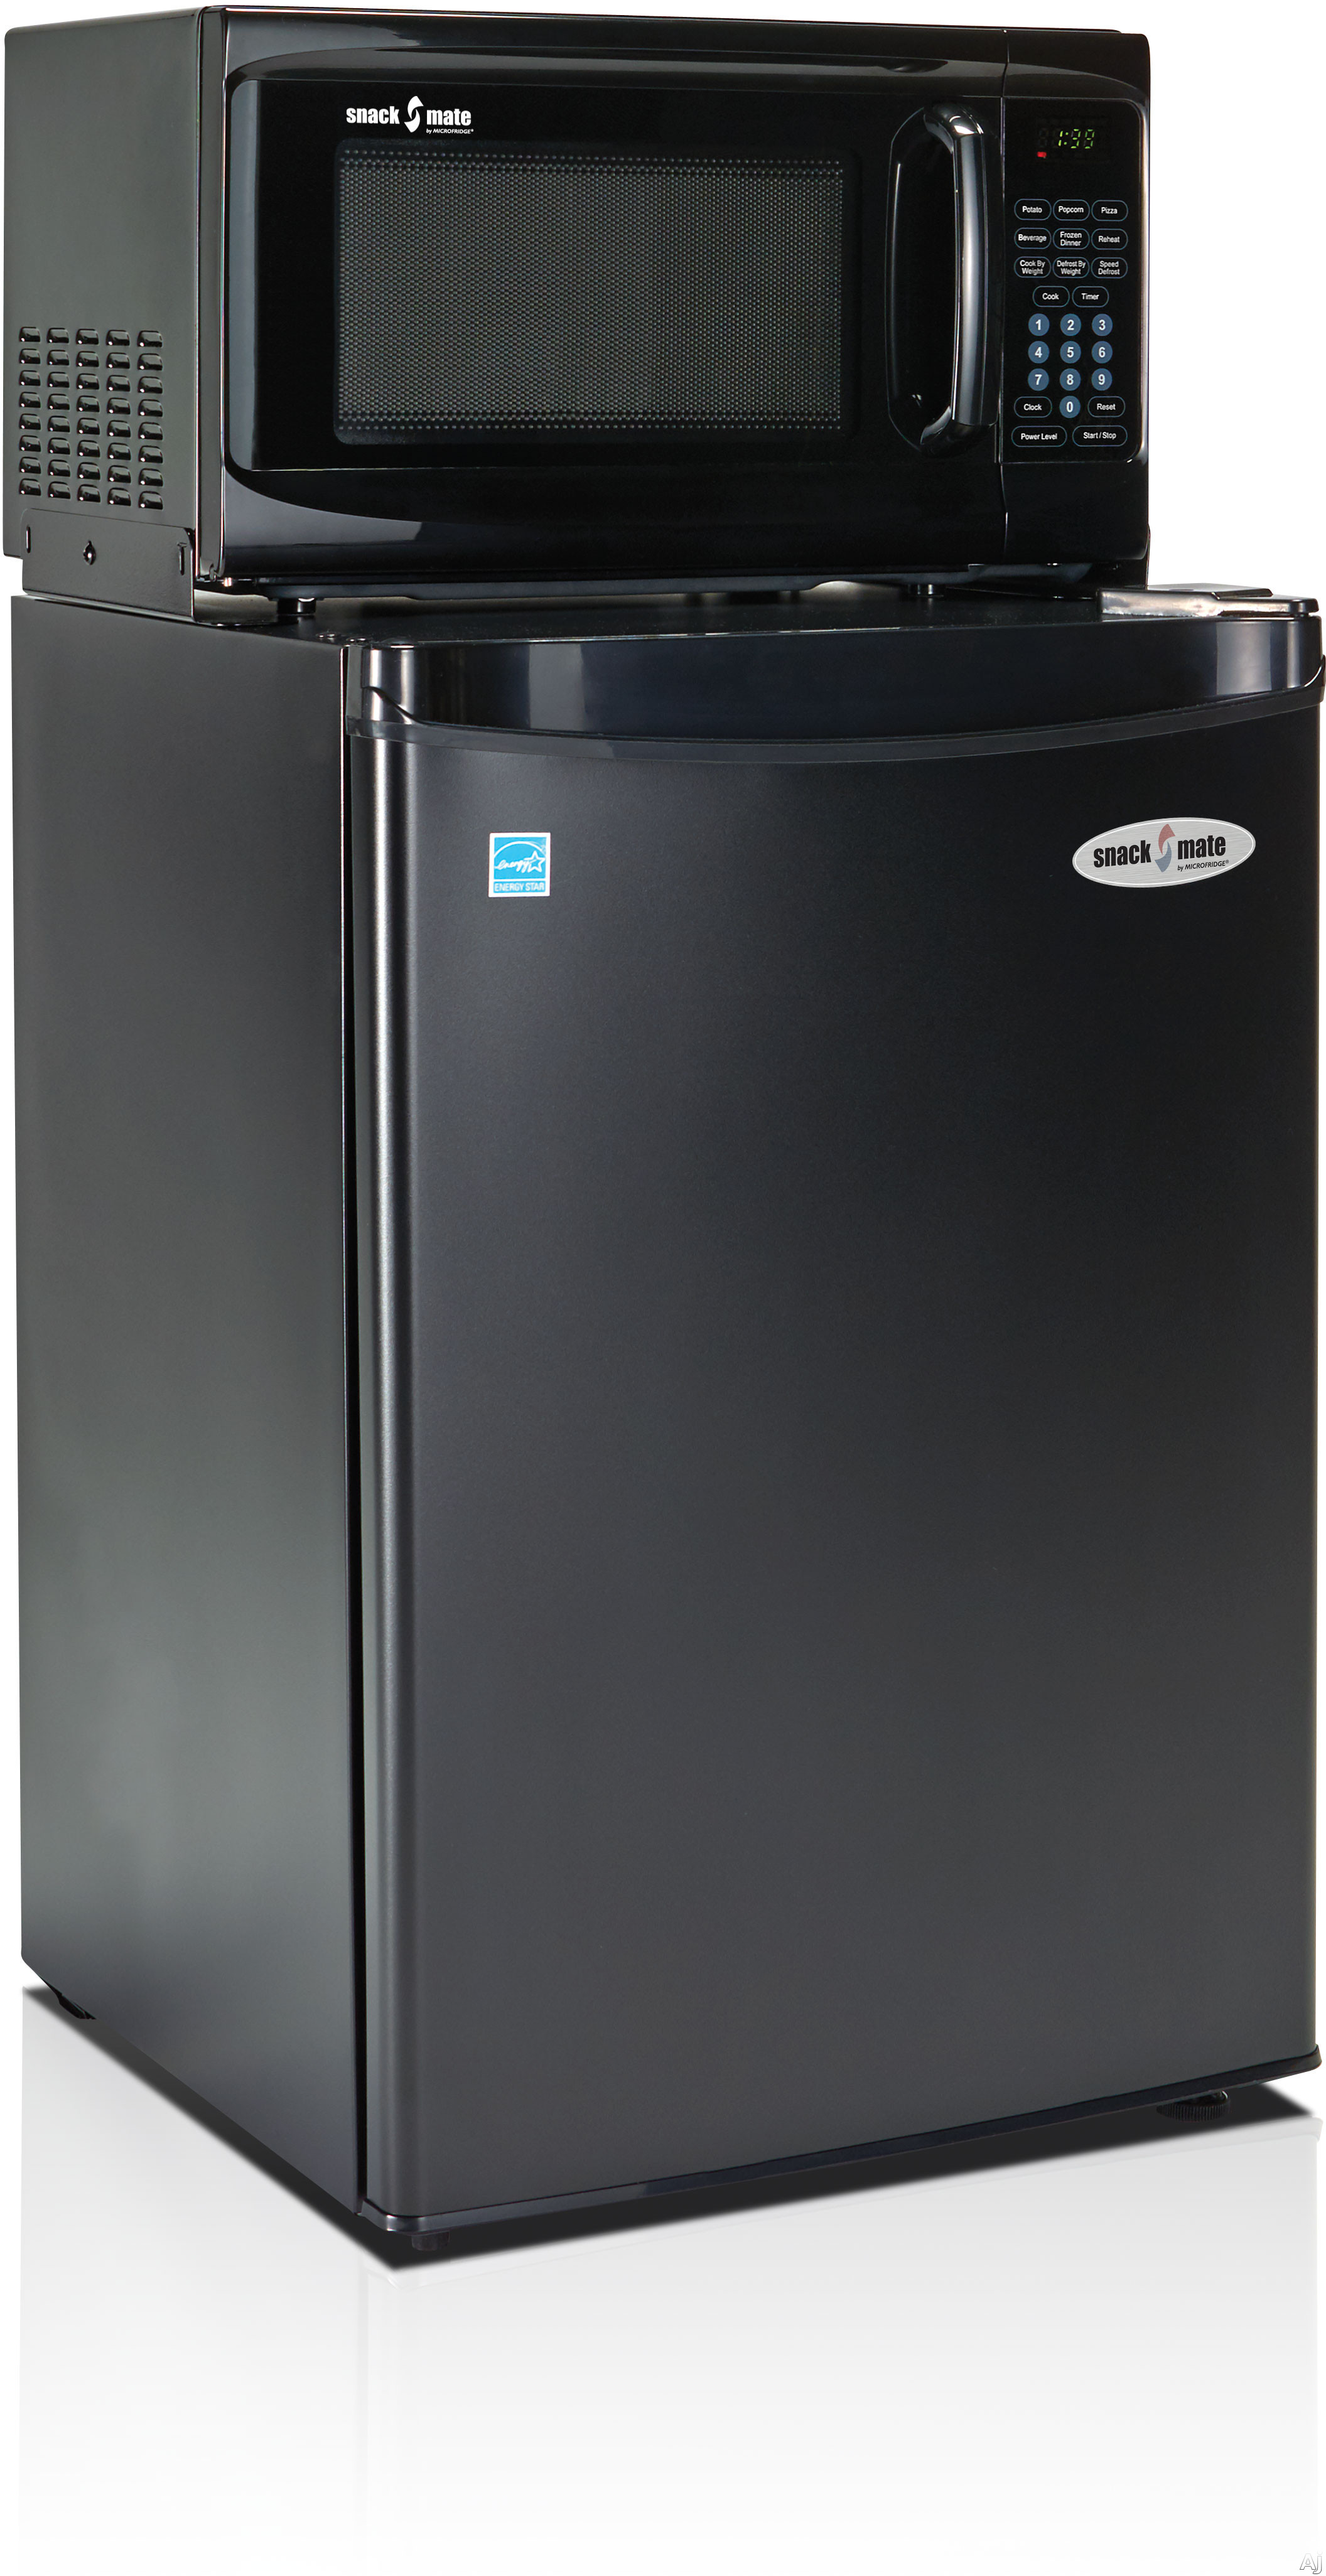 MicroFridge Snackmate Series 26SM47A1 2.6 cu. ft. Compact Refrigerator with 700 Watt Microwave, One-Plug-to-the-Wall Operations, 3 Wire Shelves, 2 Liter Bottle Door Storage, CanStor Beverage Dispenser and Energy Star Rated